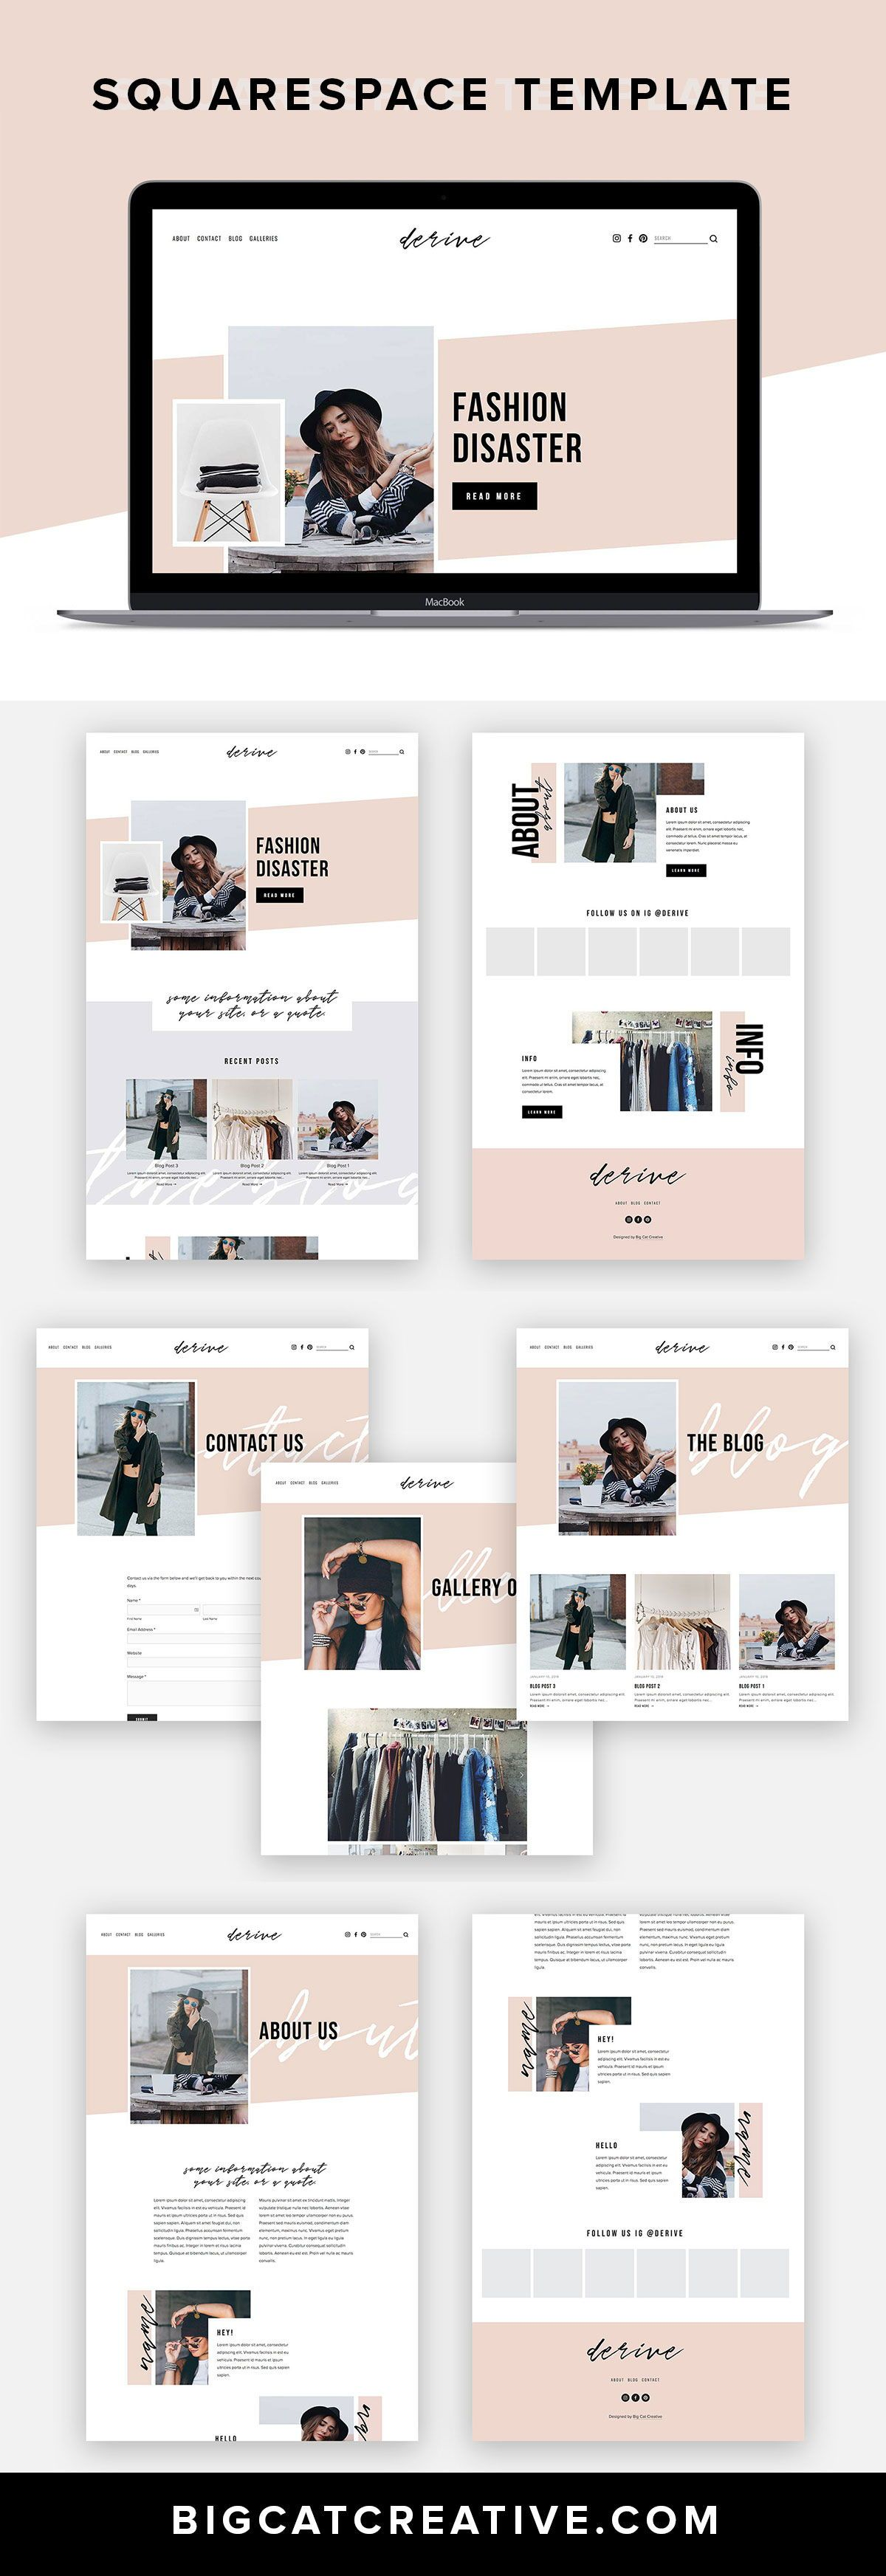 Big Cat Creative | Squarespace Templates